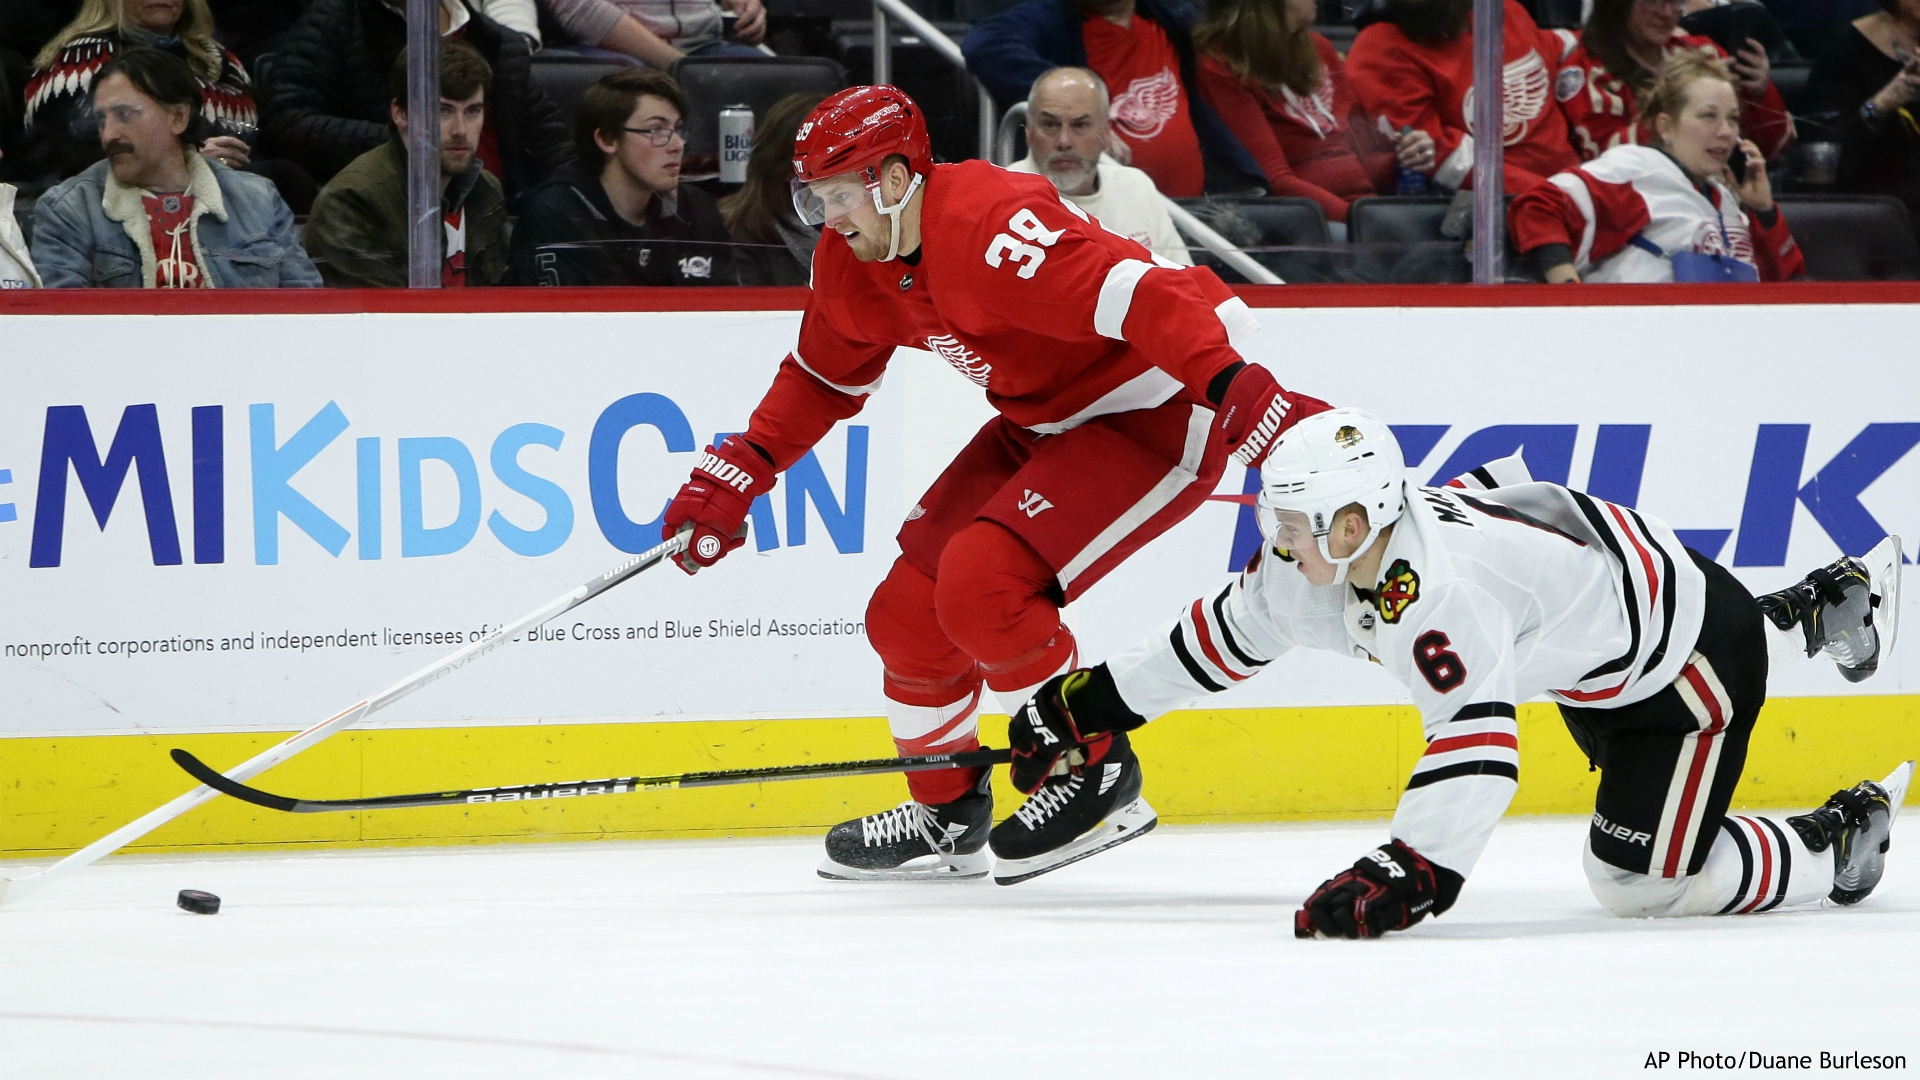 Chicago Blackhawks defenseman Olli Maatta (6) tries to steal the puck from Detroit Red Wings right wing Anthony Mantha (39) during the second period of an NHL hockey game Friday, March 6, 2020, in Detroit. (AP Photo/Duane Burleson)